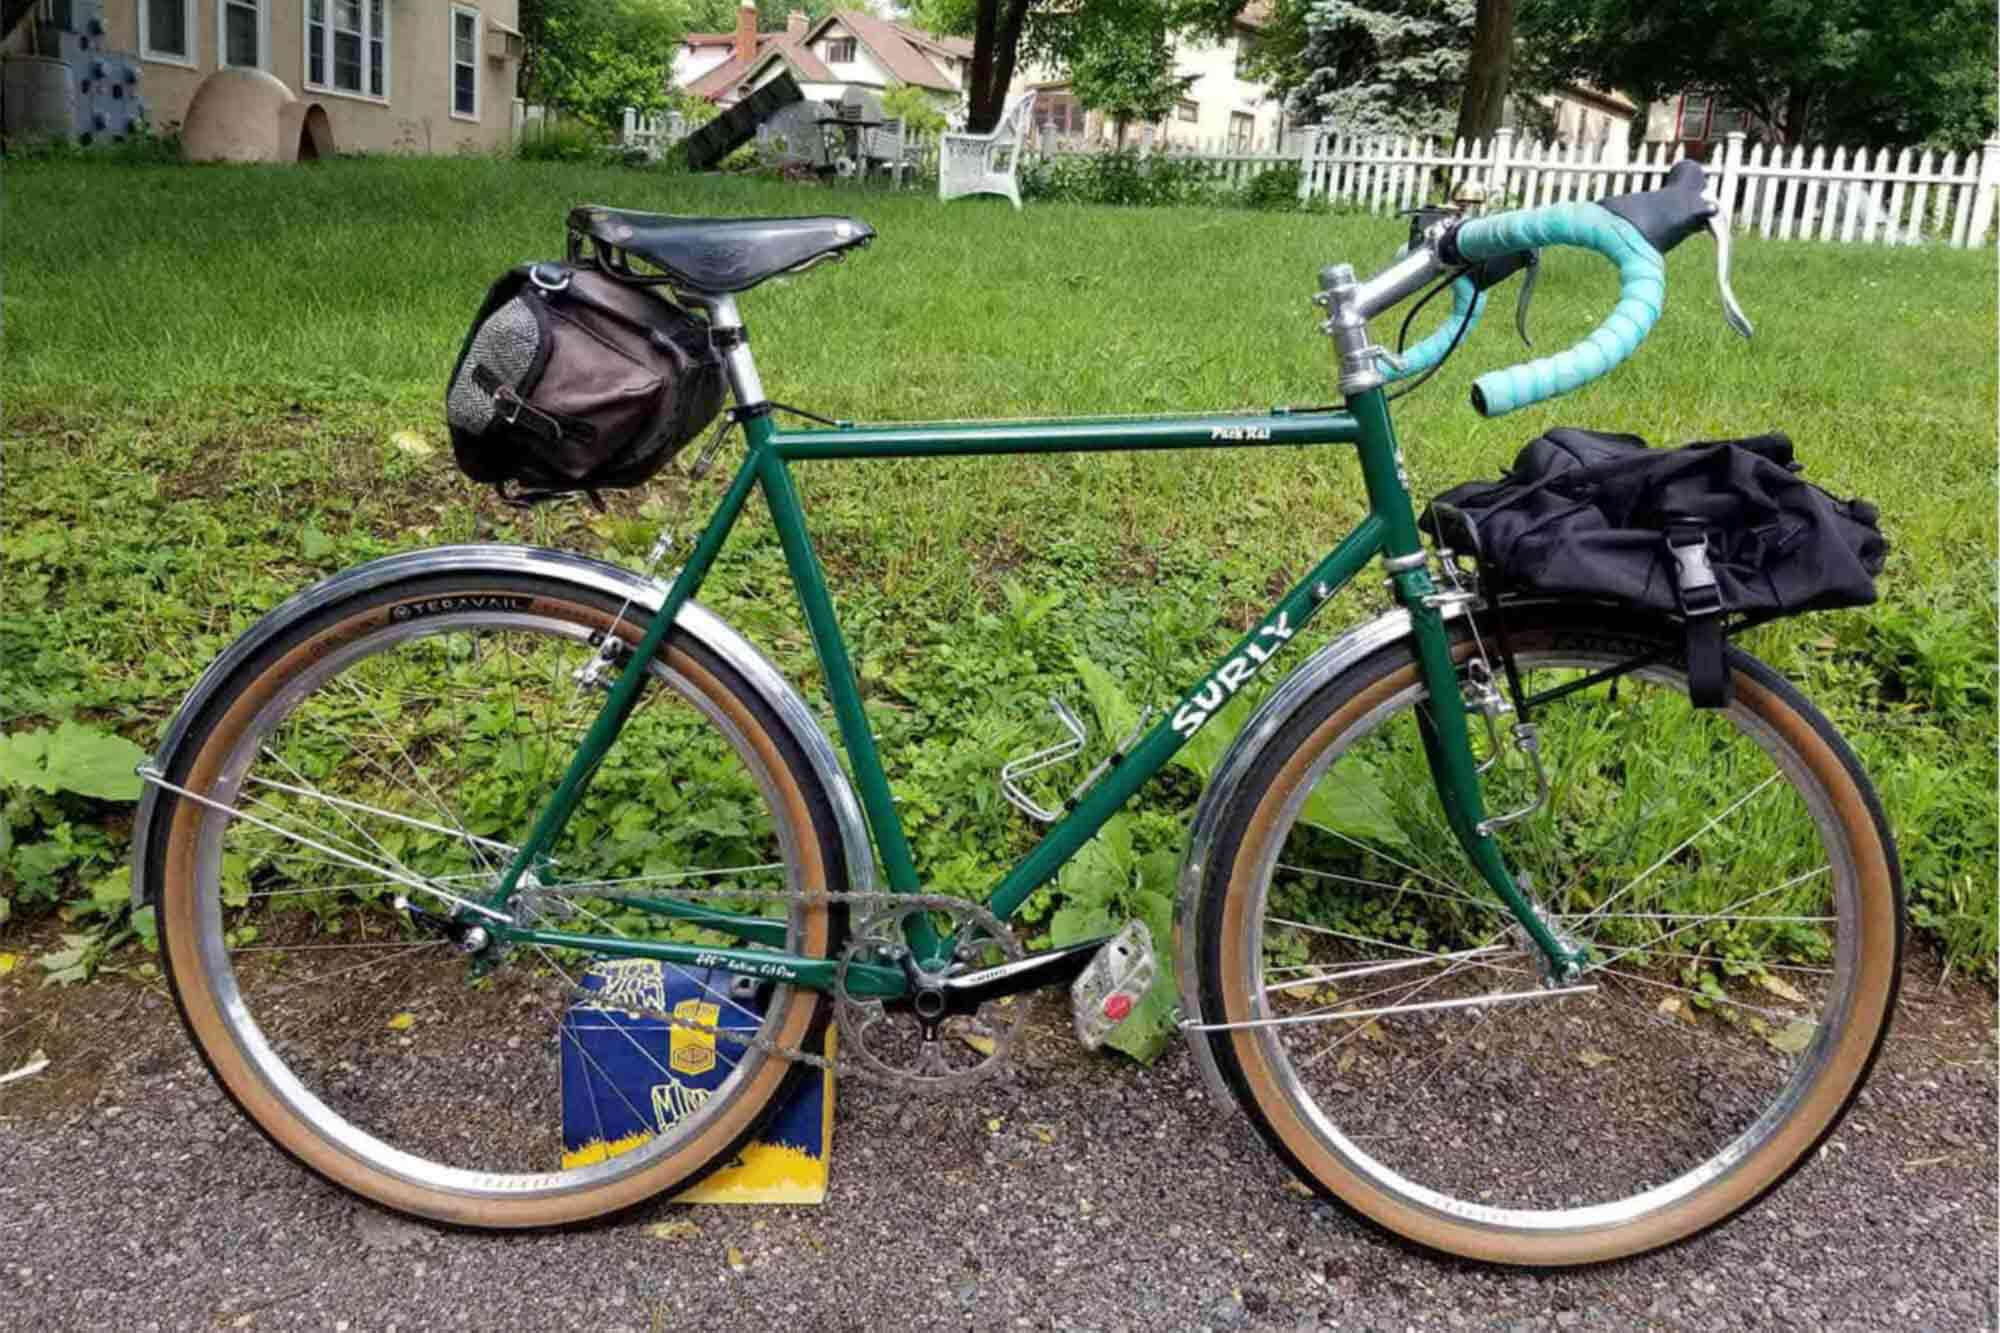 Right side view of a green Surly Pack Rat with gear packs on a sidewalk in front of a yard with a white picket fence